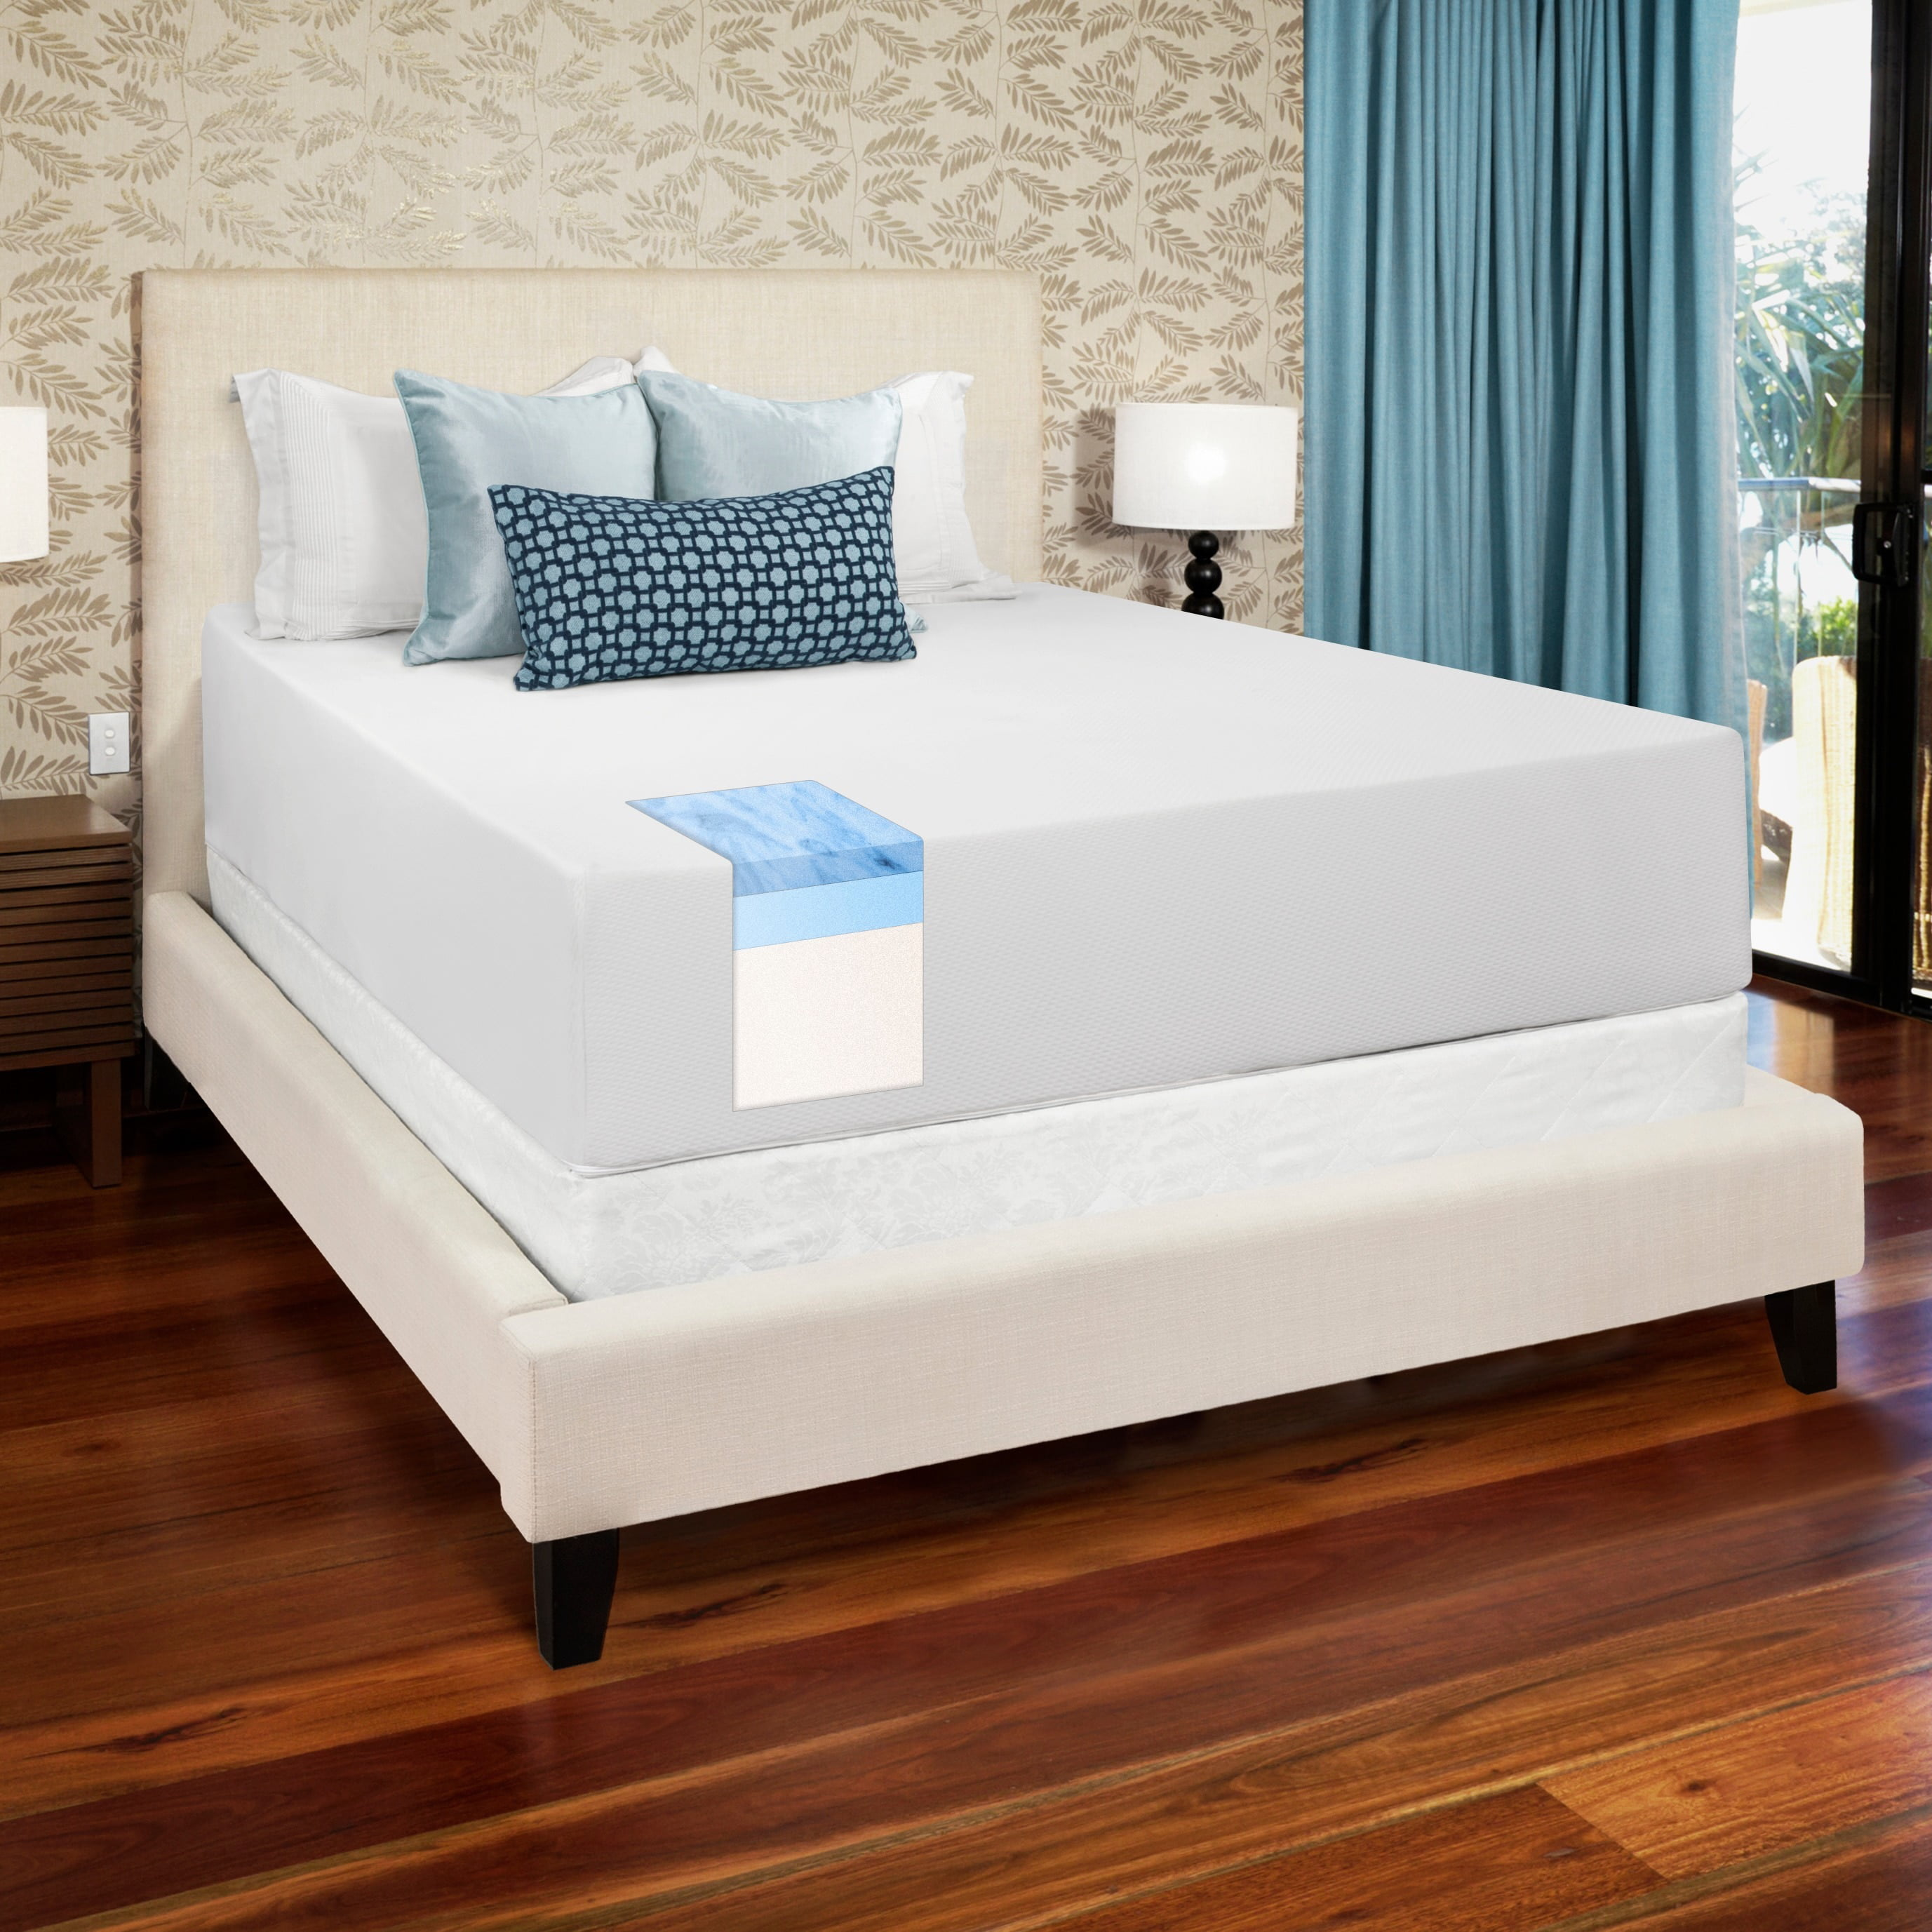 select luxury medium firm 14inch kingsize gel memory foam mattress walmartcom